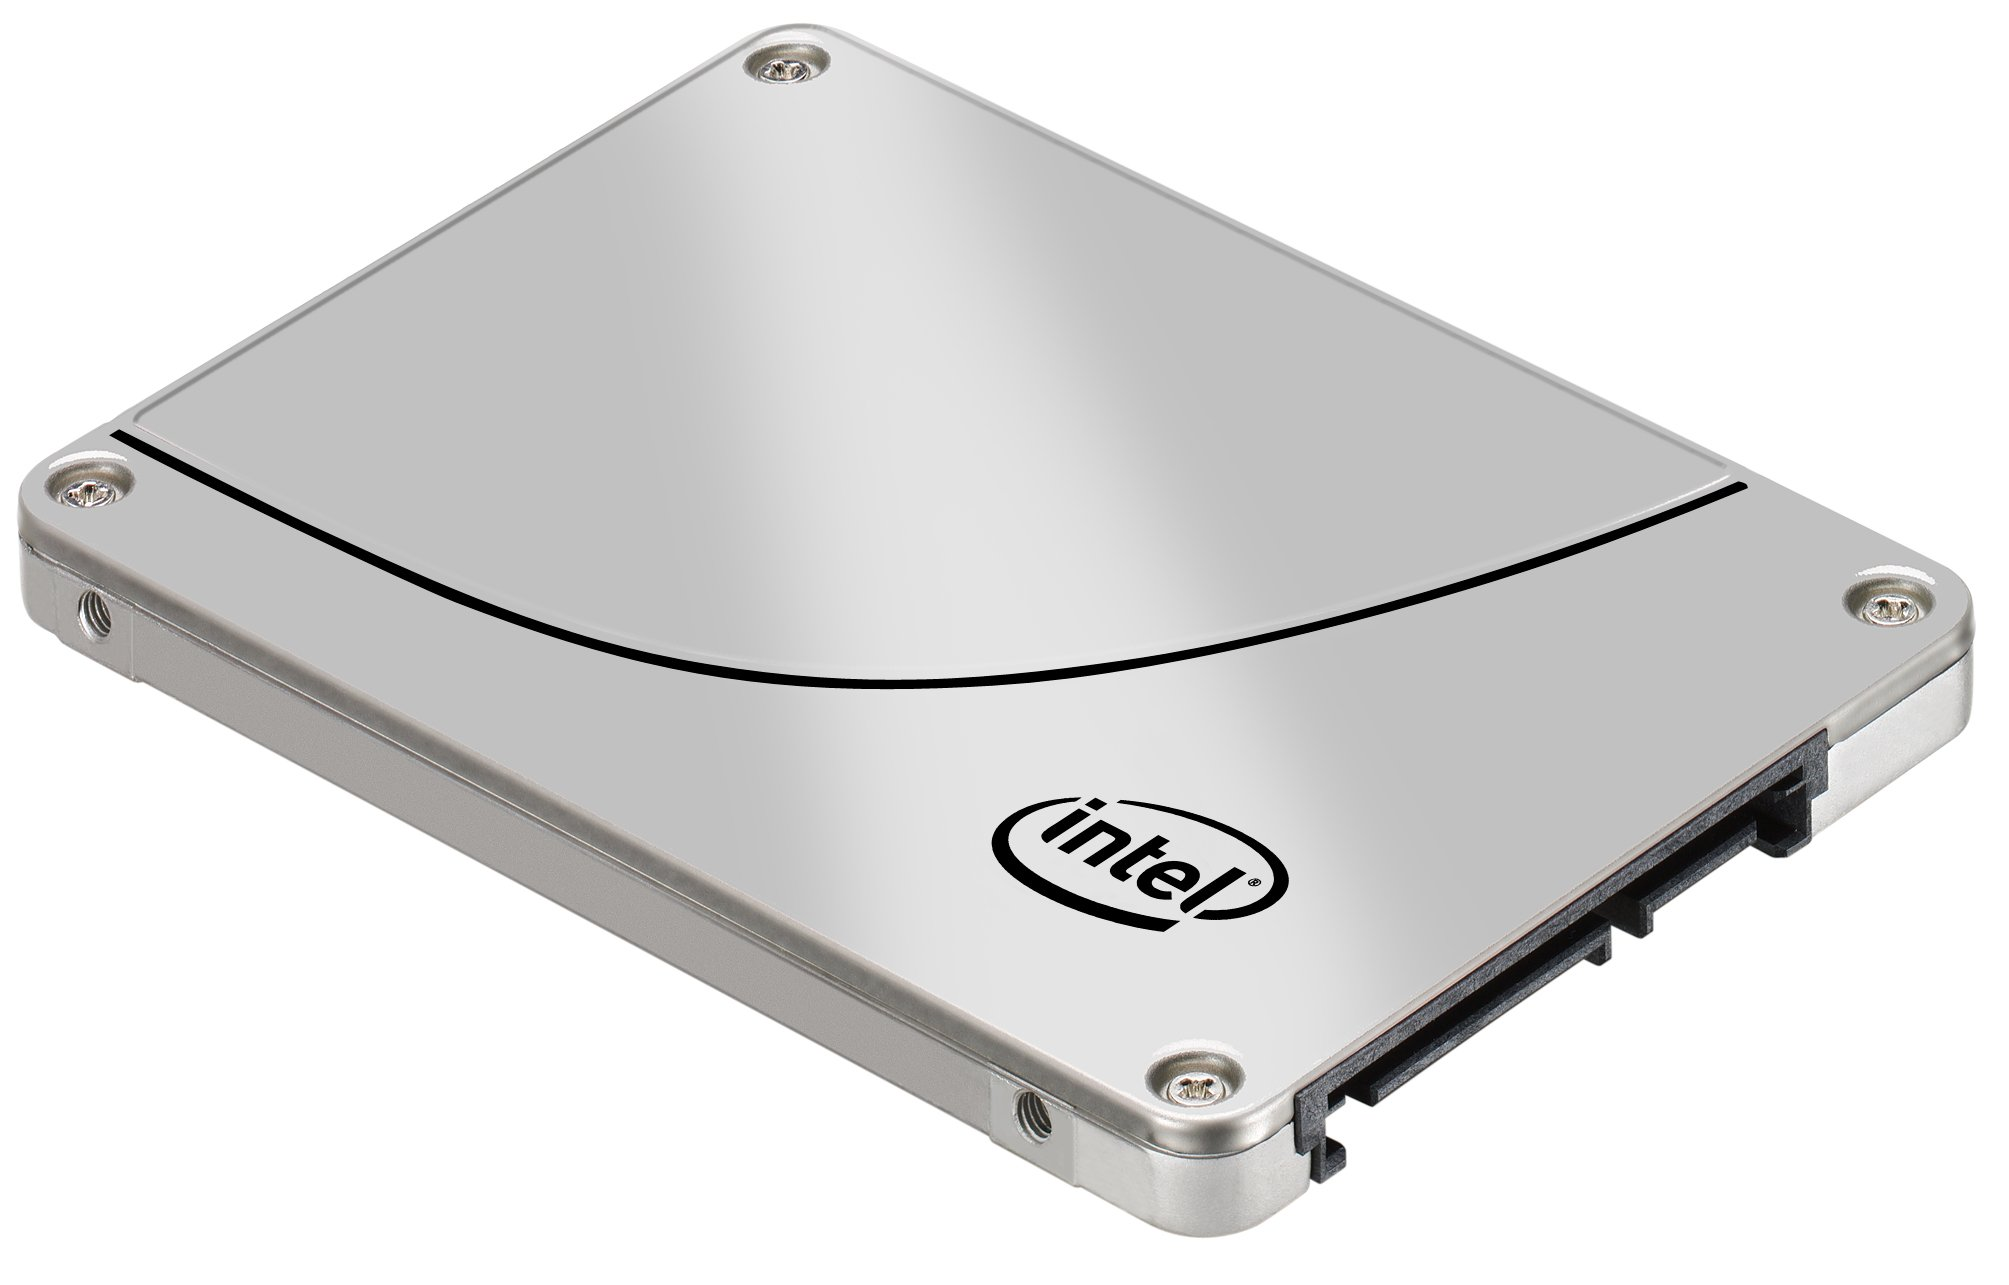 Intel Corp. SSDSC2BB800G401 S3500 Series 800GB SSD FD